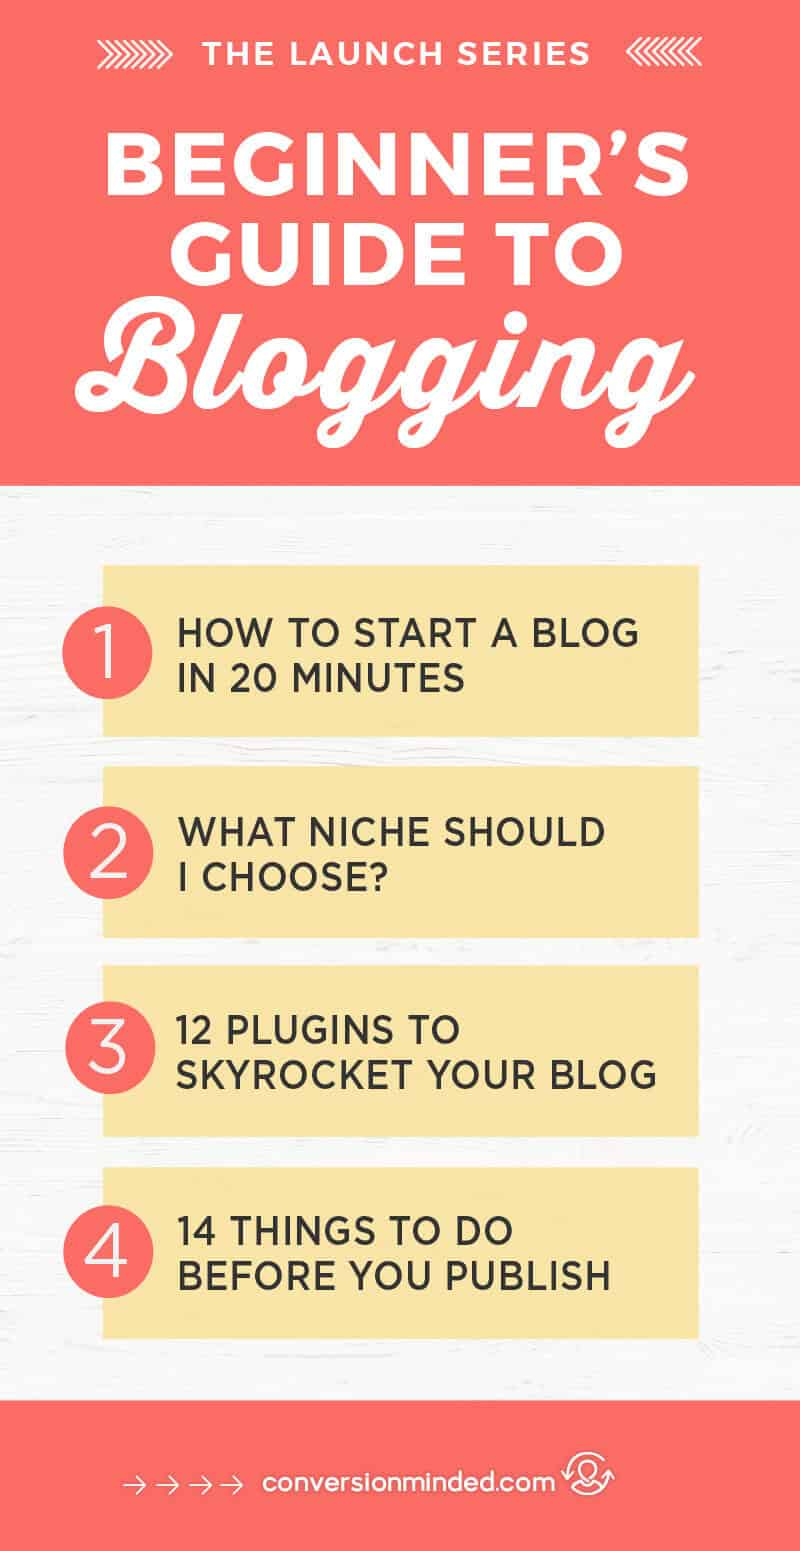 Beginner's Guide to Blogging: Here's how to use WordPress to create a site. You can do it in just 20 minutes!